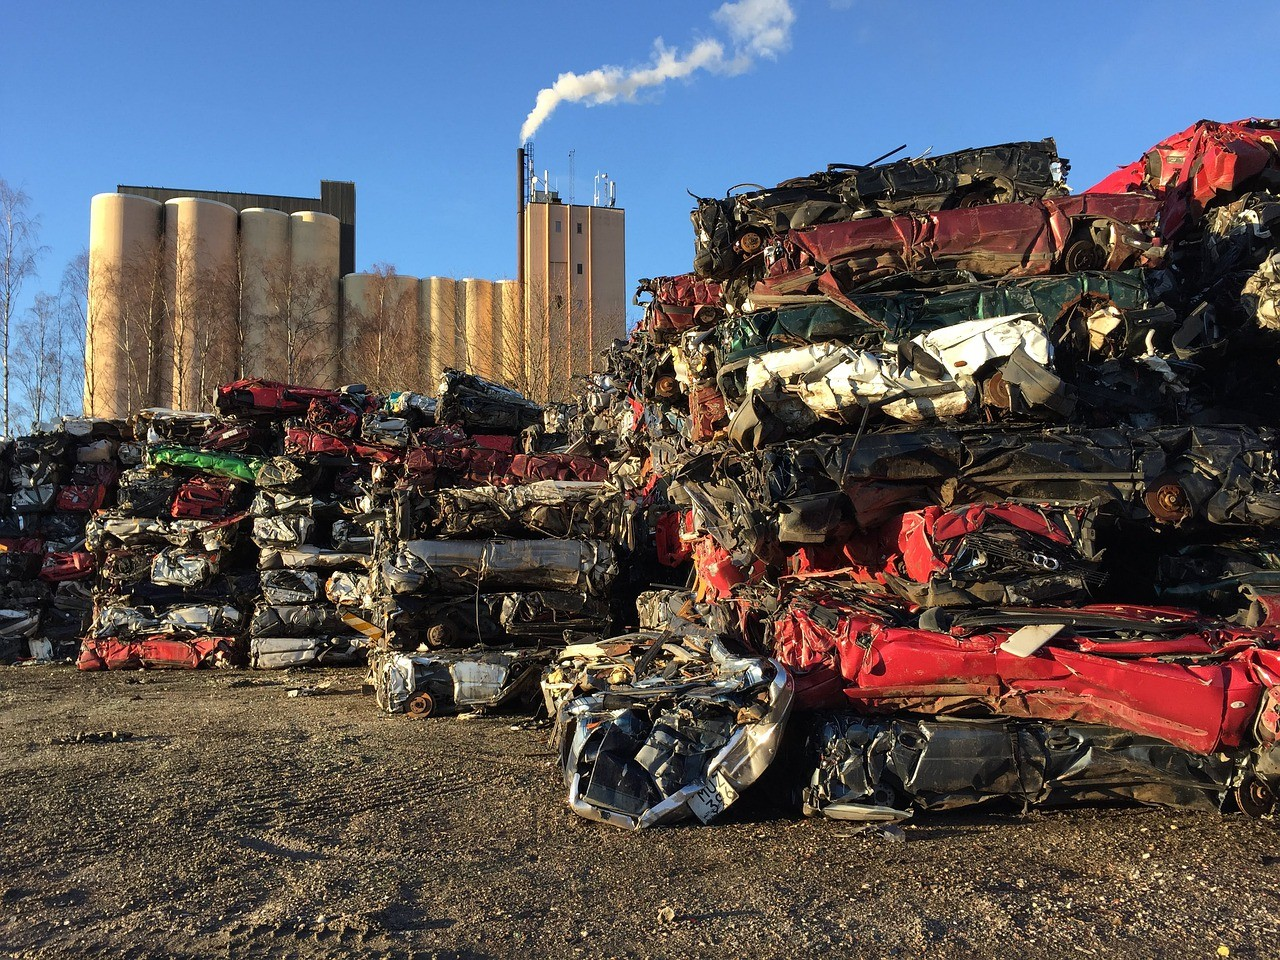 Automotive recycling